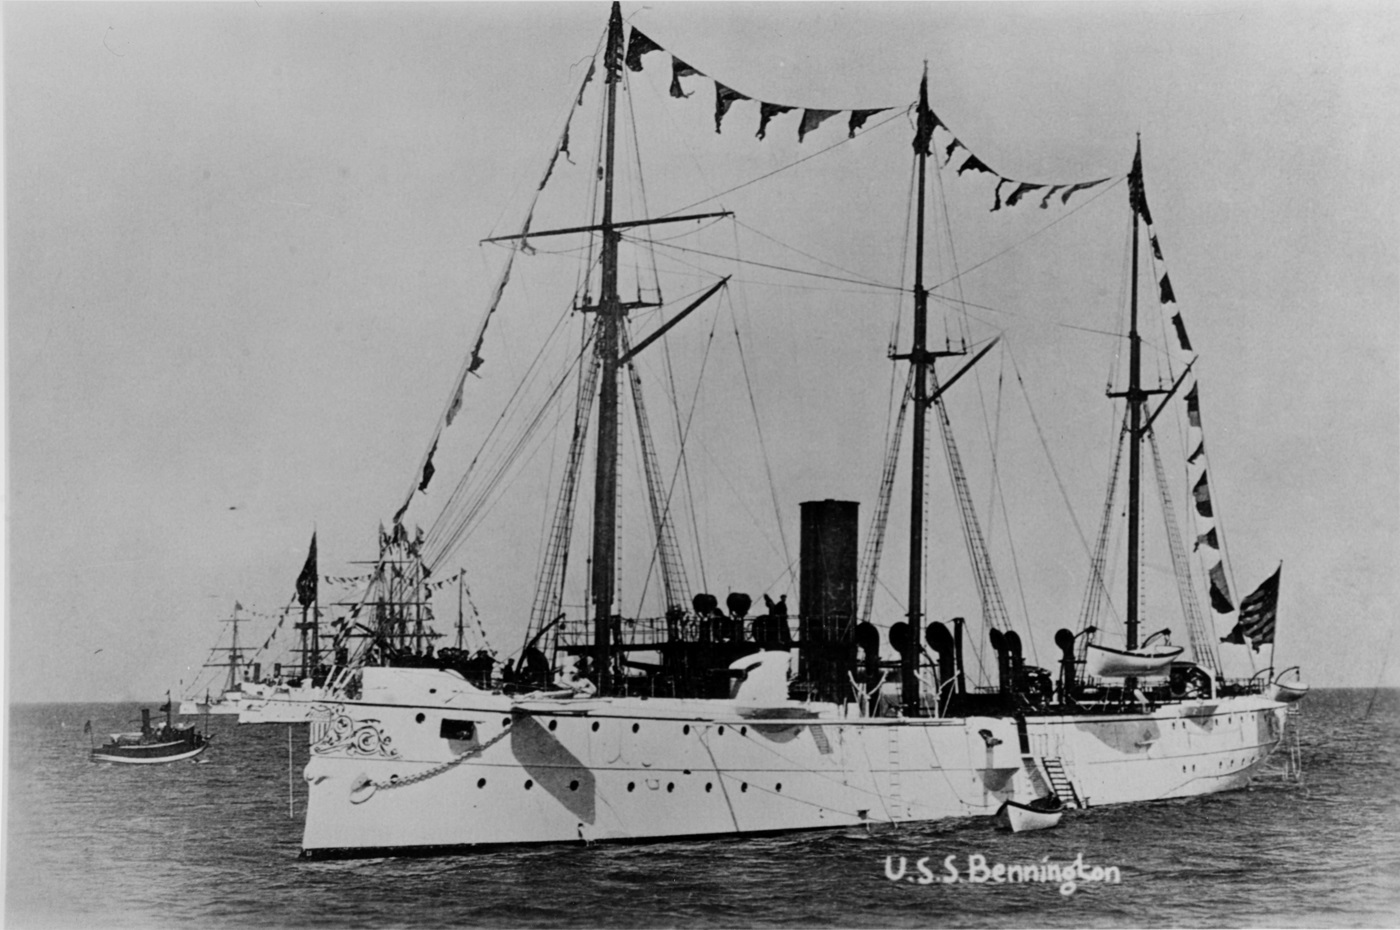 (Gunboat # 4) Dressed with flags in a harbor, probably while serving with the Squadron of Evolution, circa 1891-1892. Courtesy of Donald M. McPherson, 1969. U.S. Naval History and Heritage Command Photograph. Catalog #: NH 67551